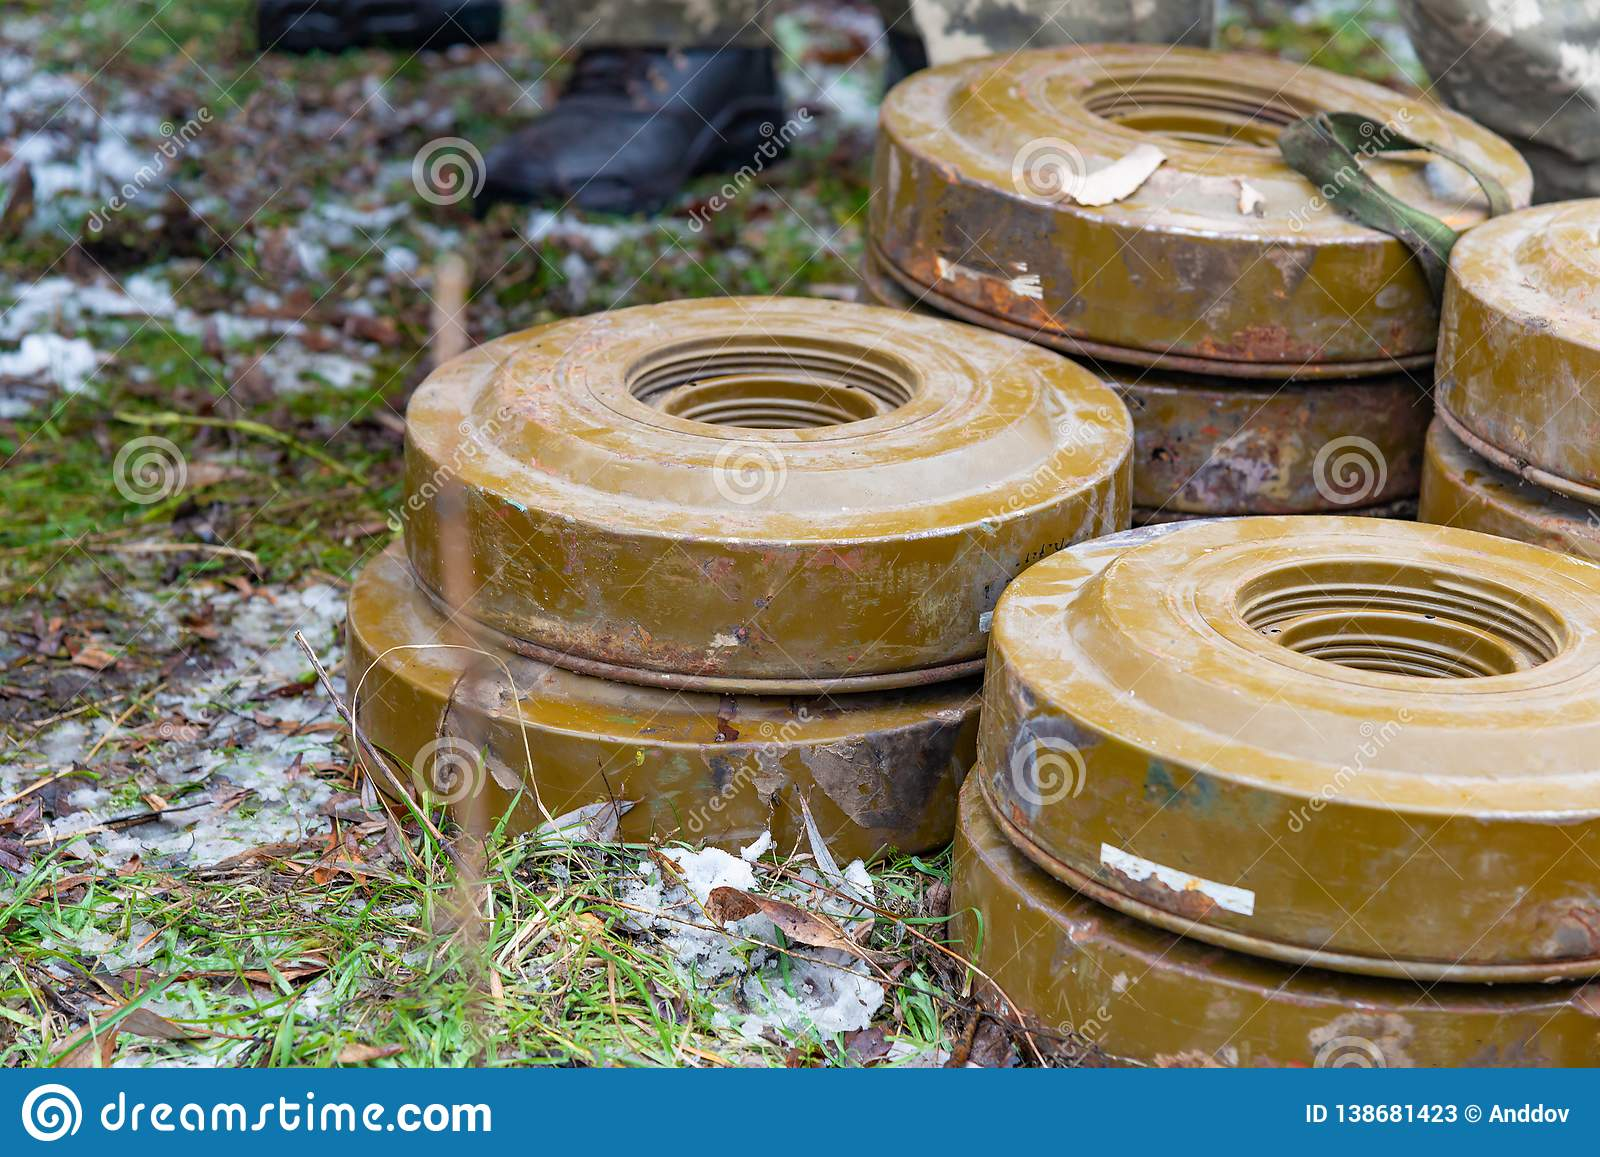 Anti-tank and anti-personnel mines without a fuse lie on the ground